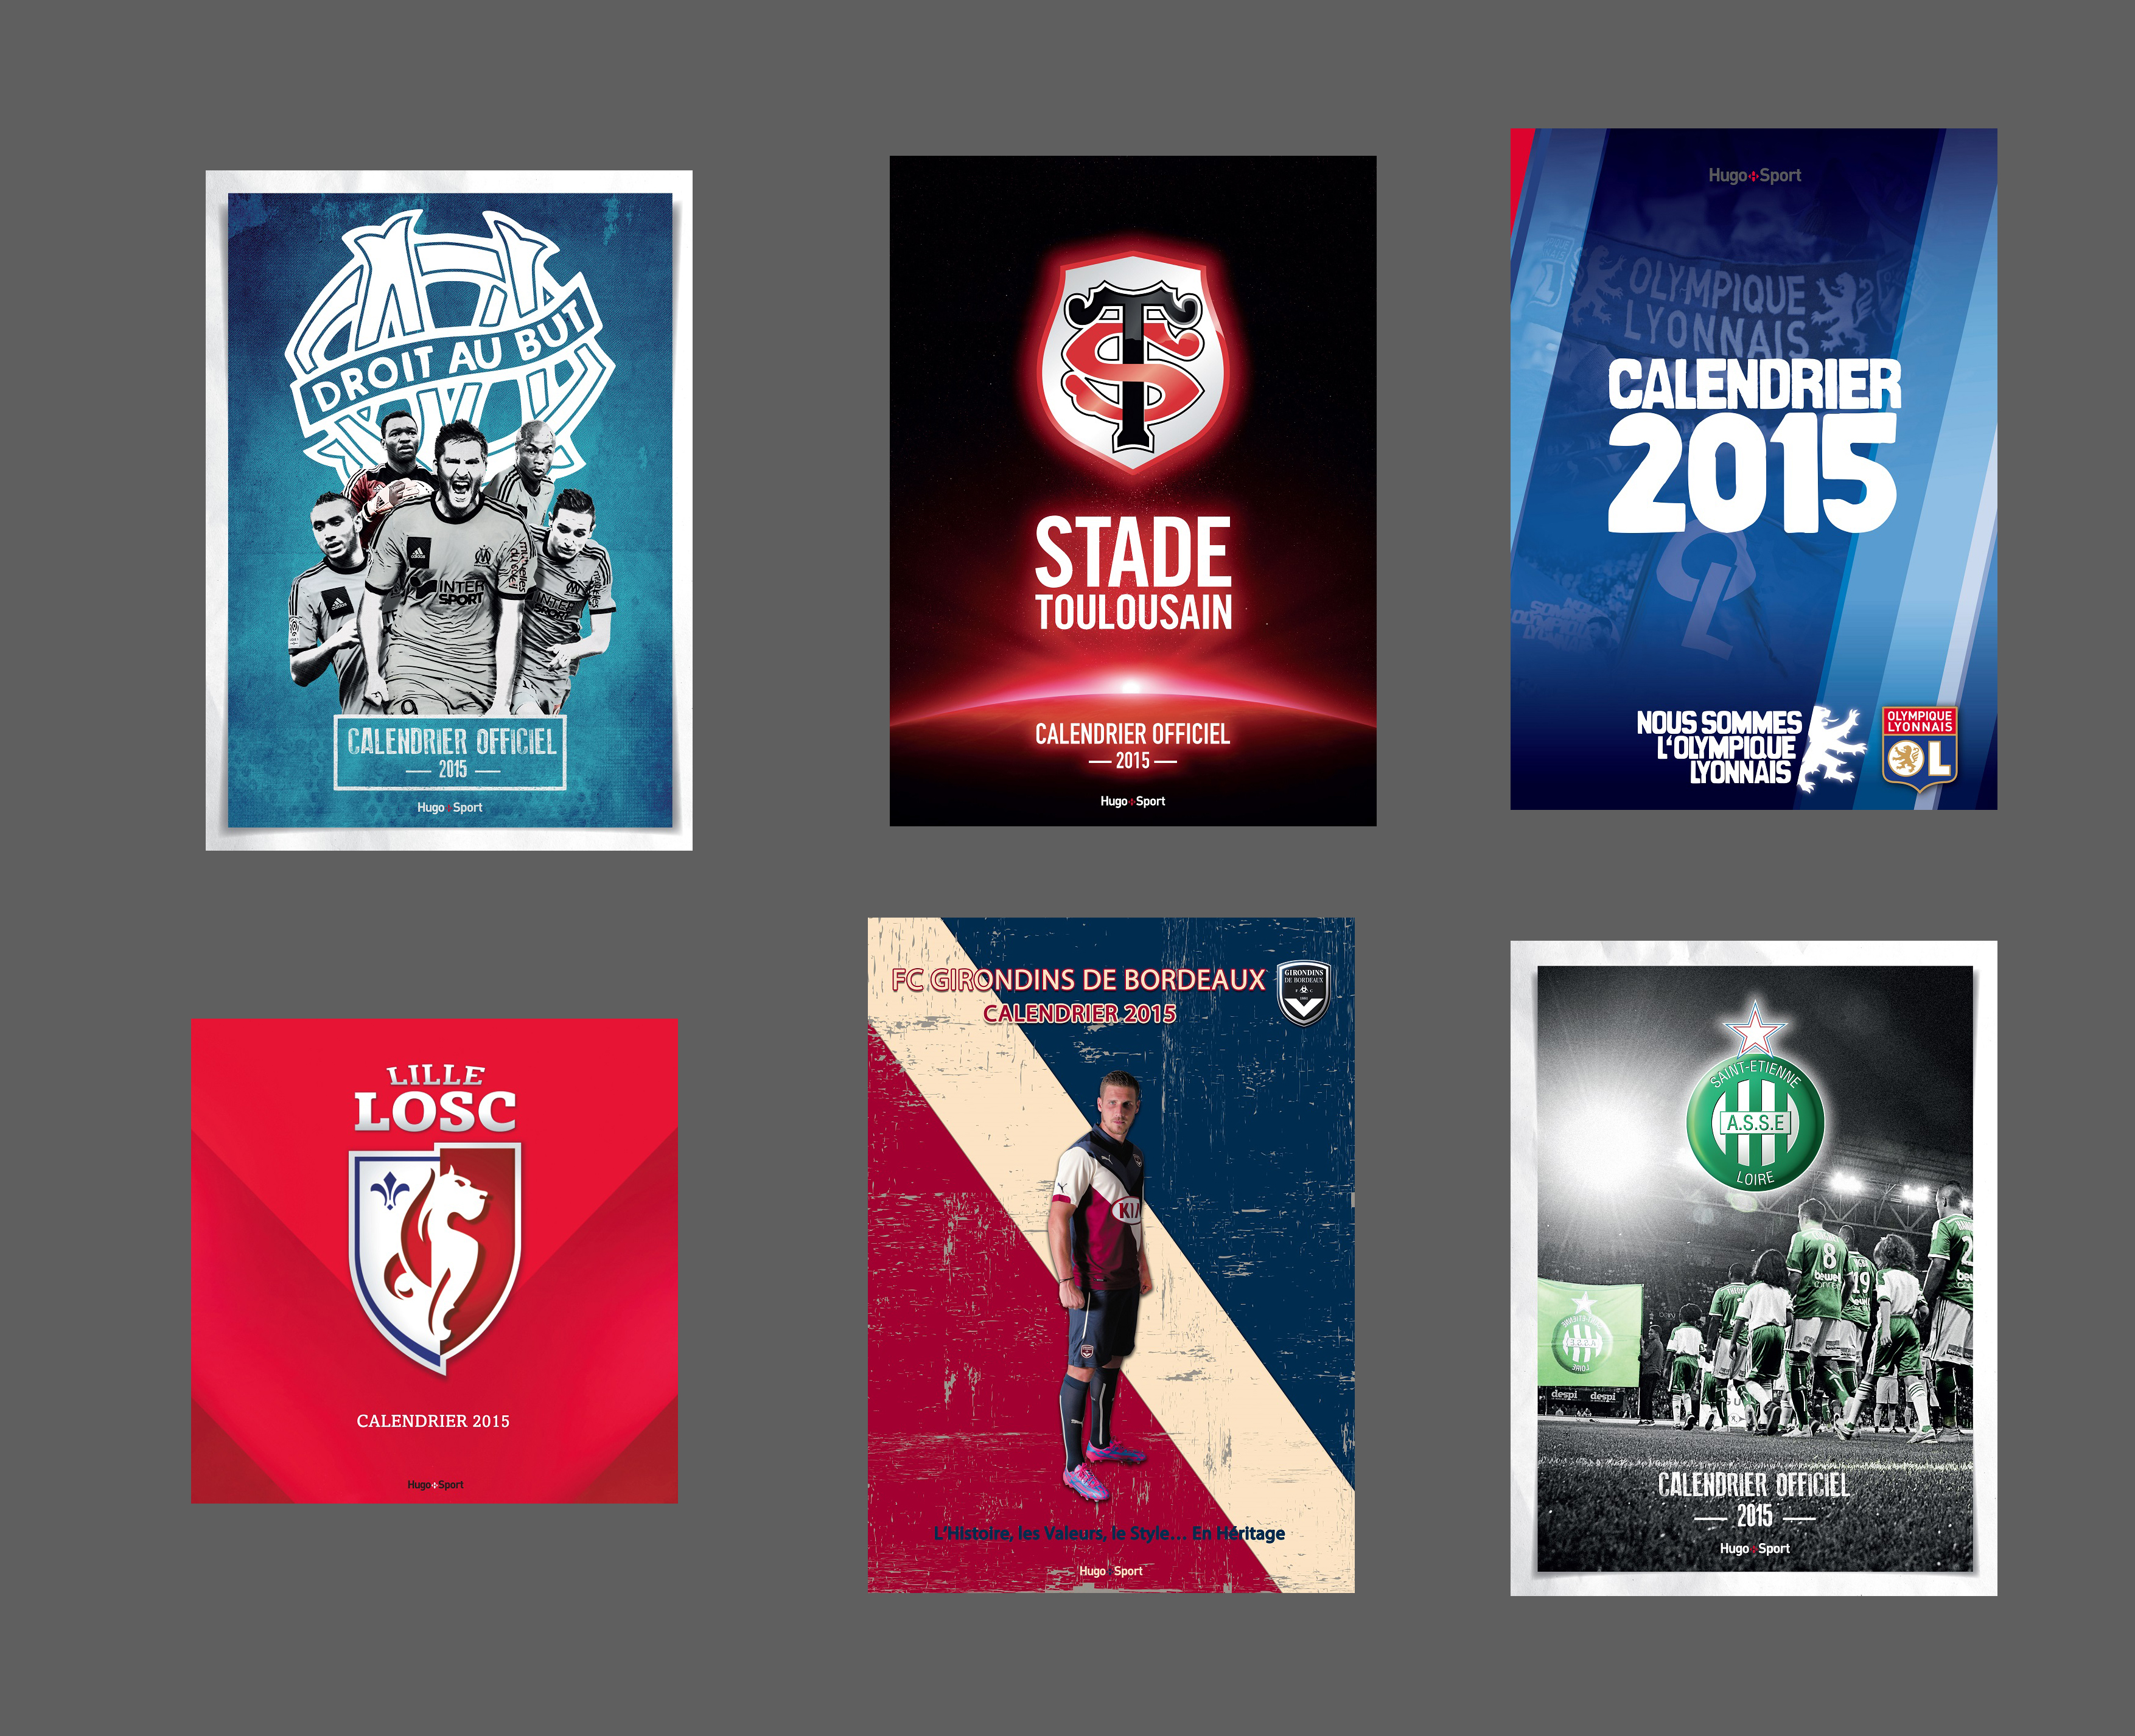 CONCOURS SBB] OM, ASSE, OL, LOSC, FCGB, Stade Toulousain Gagnez